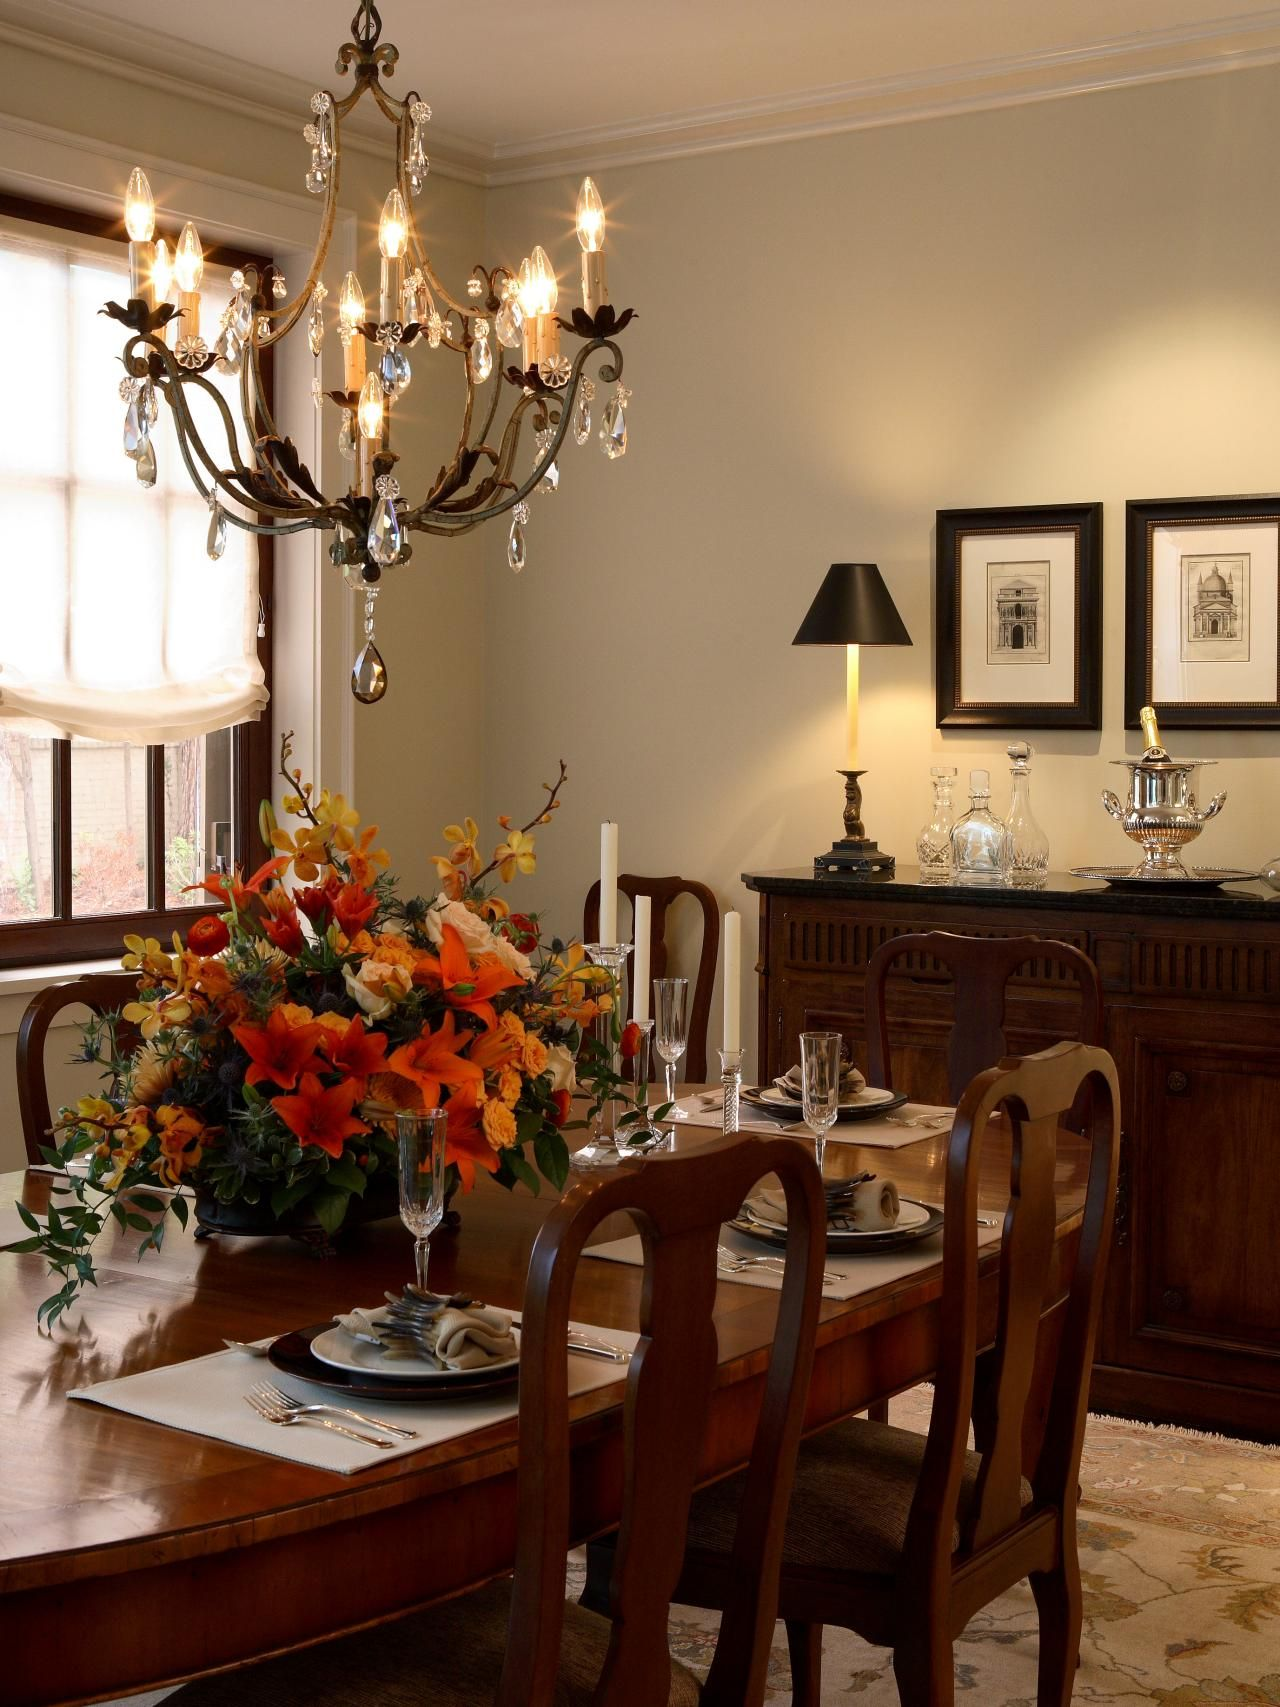 A dazzling chandelier and floral centerpiece inject life and color